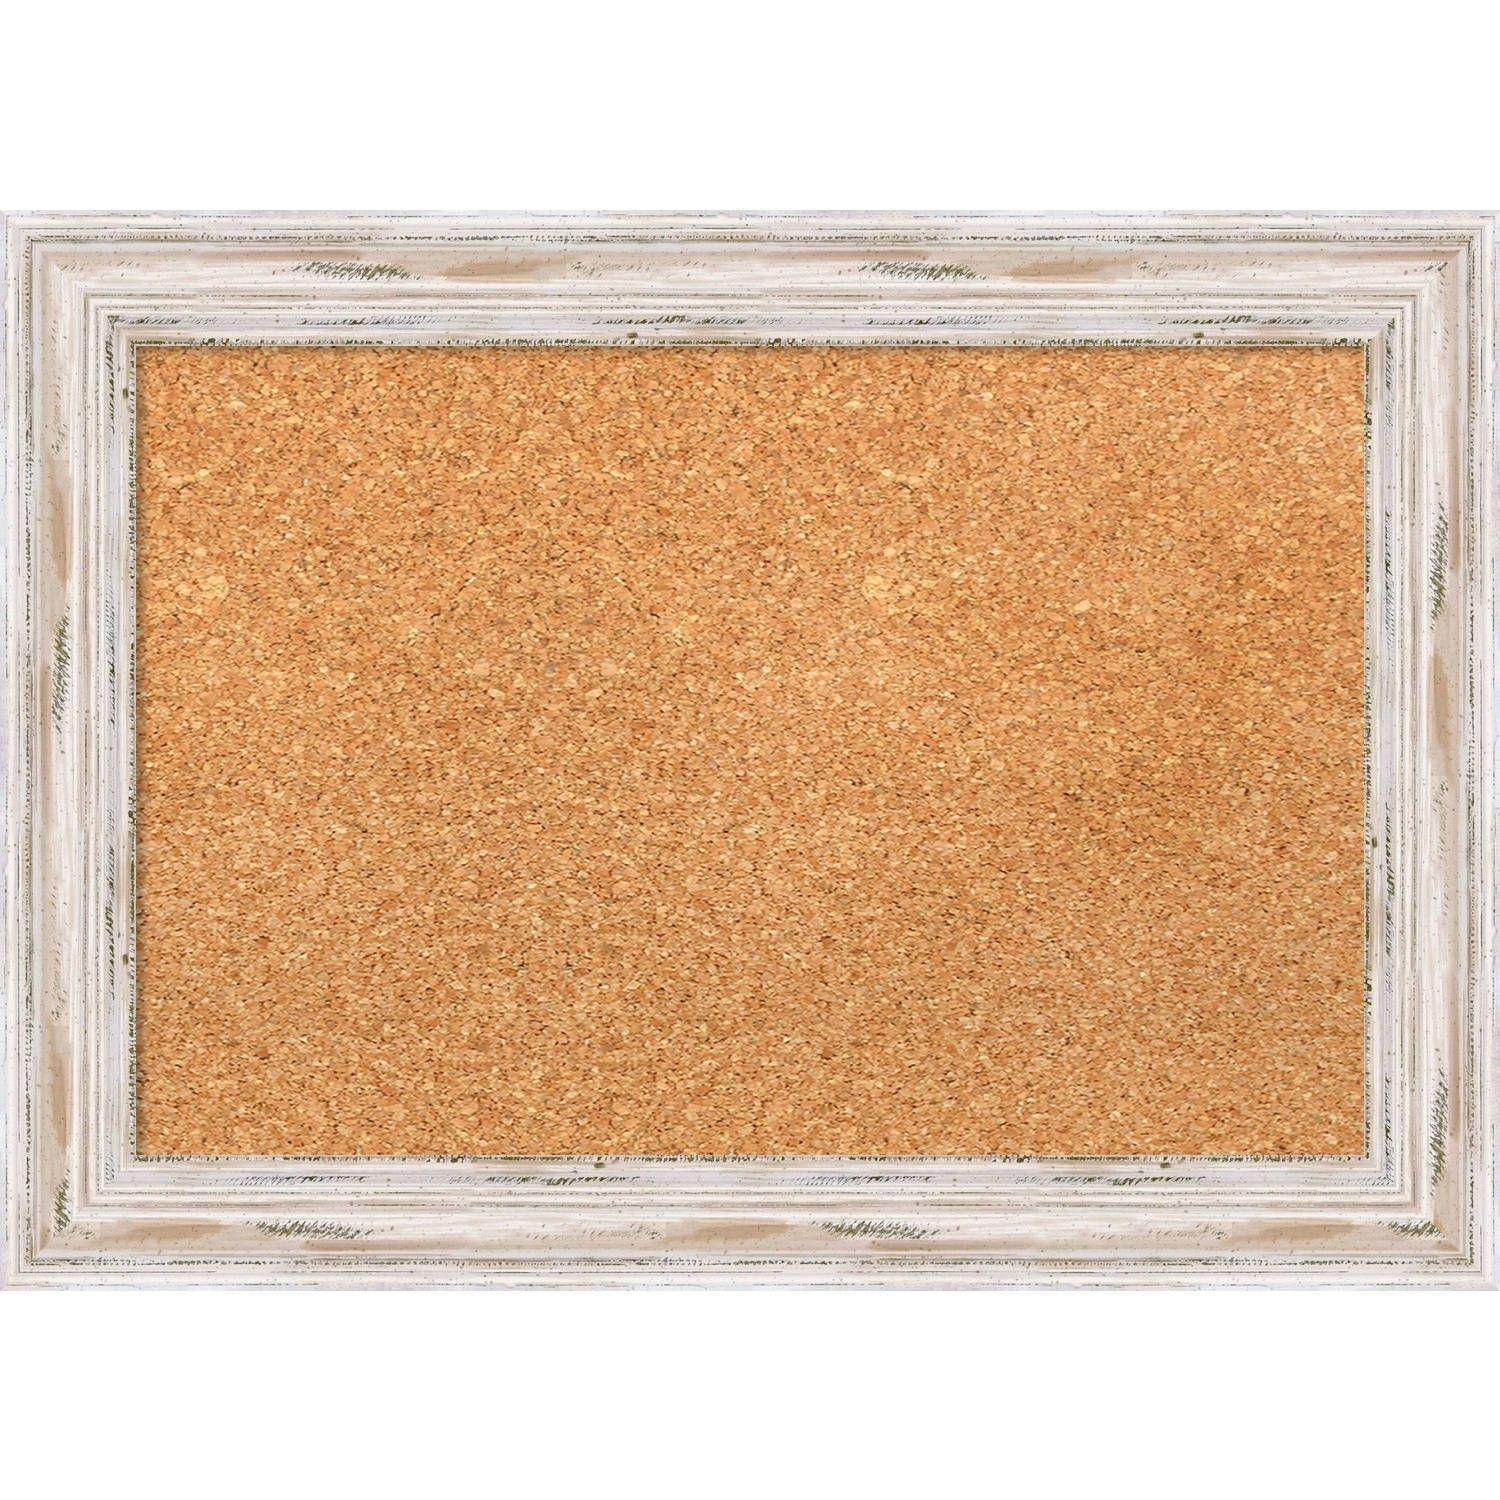 Amanti Art Framed Cork Board Alexandria White Wash Small 22 X 16 Inch Beige Off